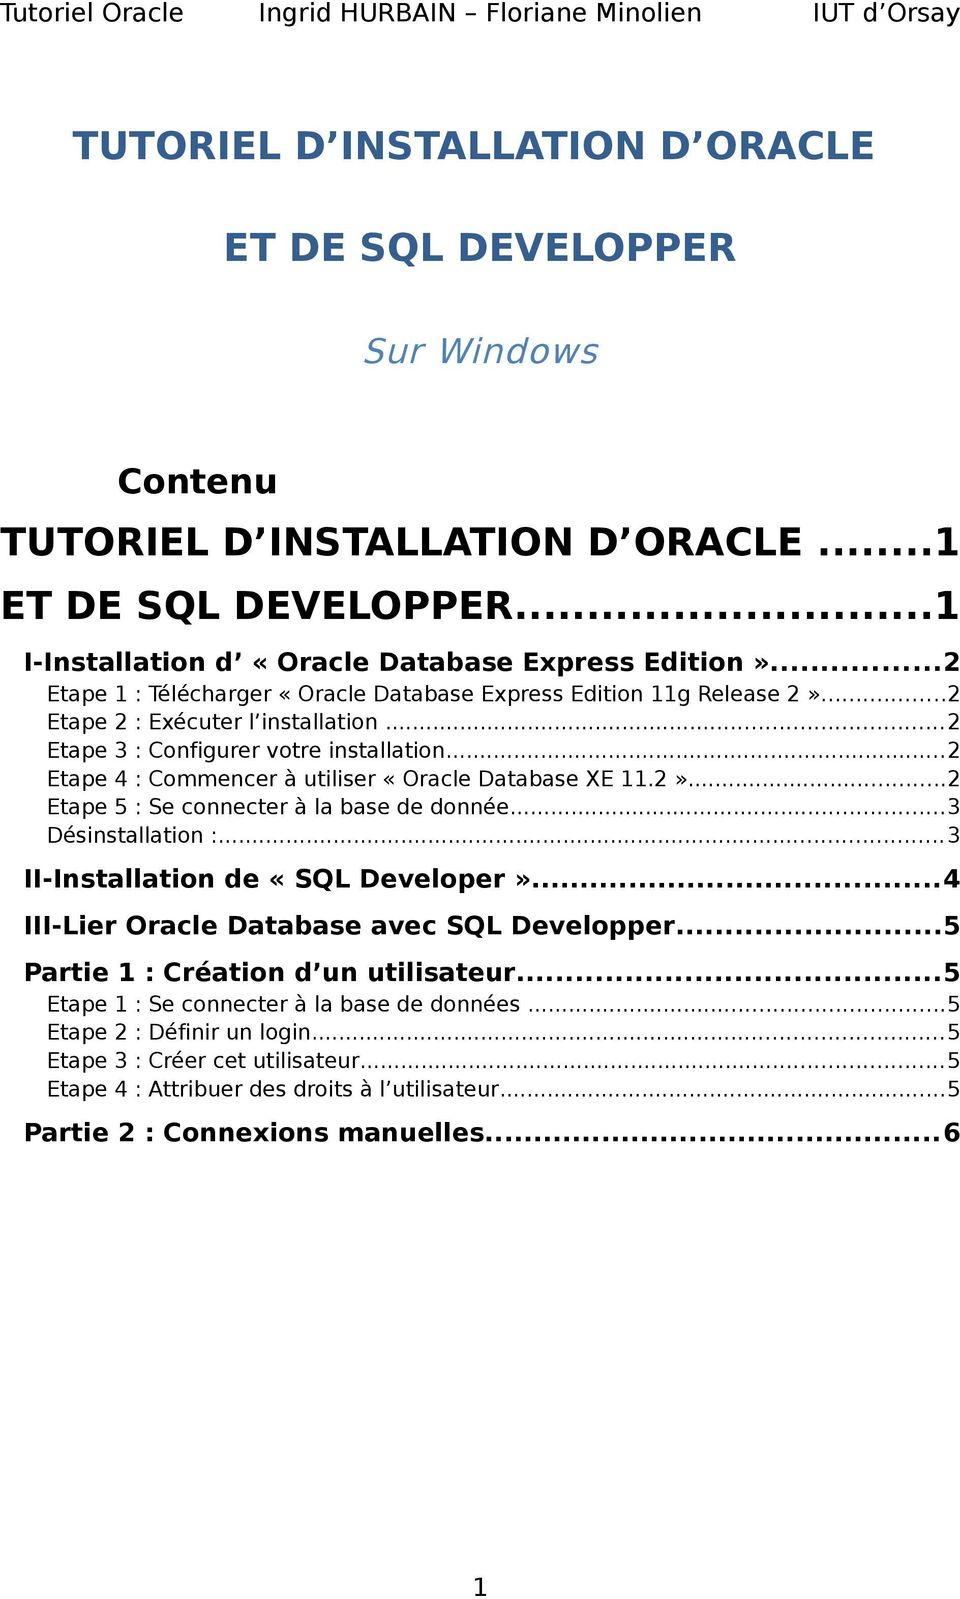 ..2 Etape 4 : Commencer à utiliser «Oracle Database XE 11.2»...2 Etape 5 : Se connecter à la base de donnée...3 Désinstallation :...3 II-Installation de «SQL Developer».